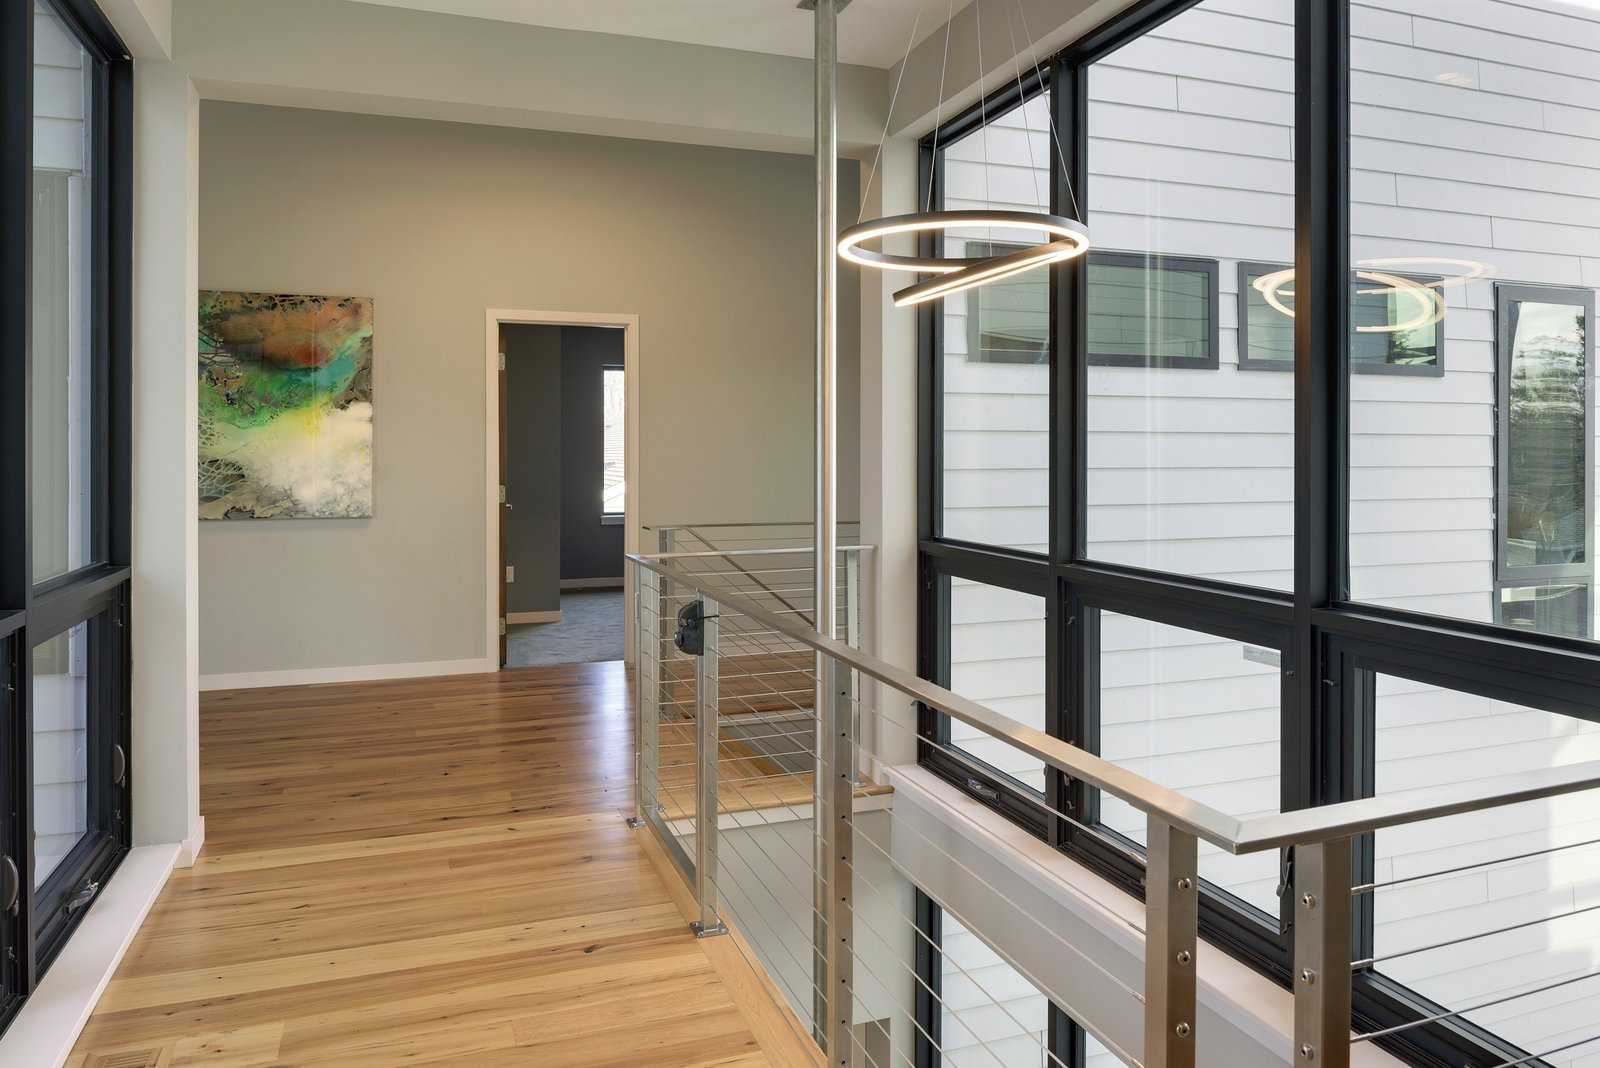 """Photo 6 of 11 in Minneapolis Modern """"Dream Home"""" Built by Sustainable 9 Design + Build"""